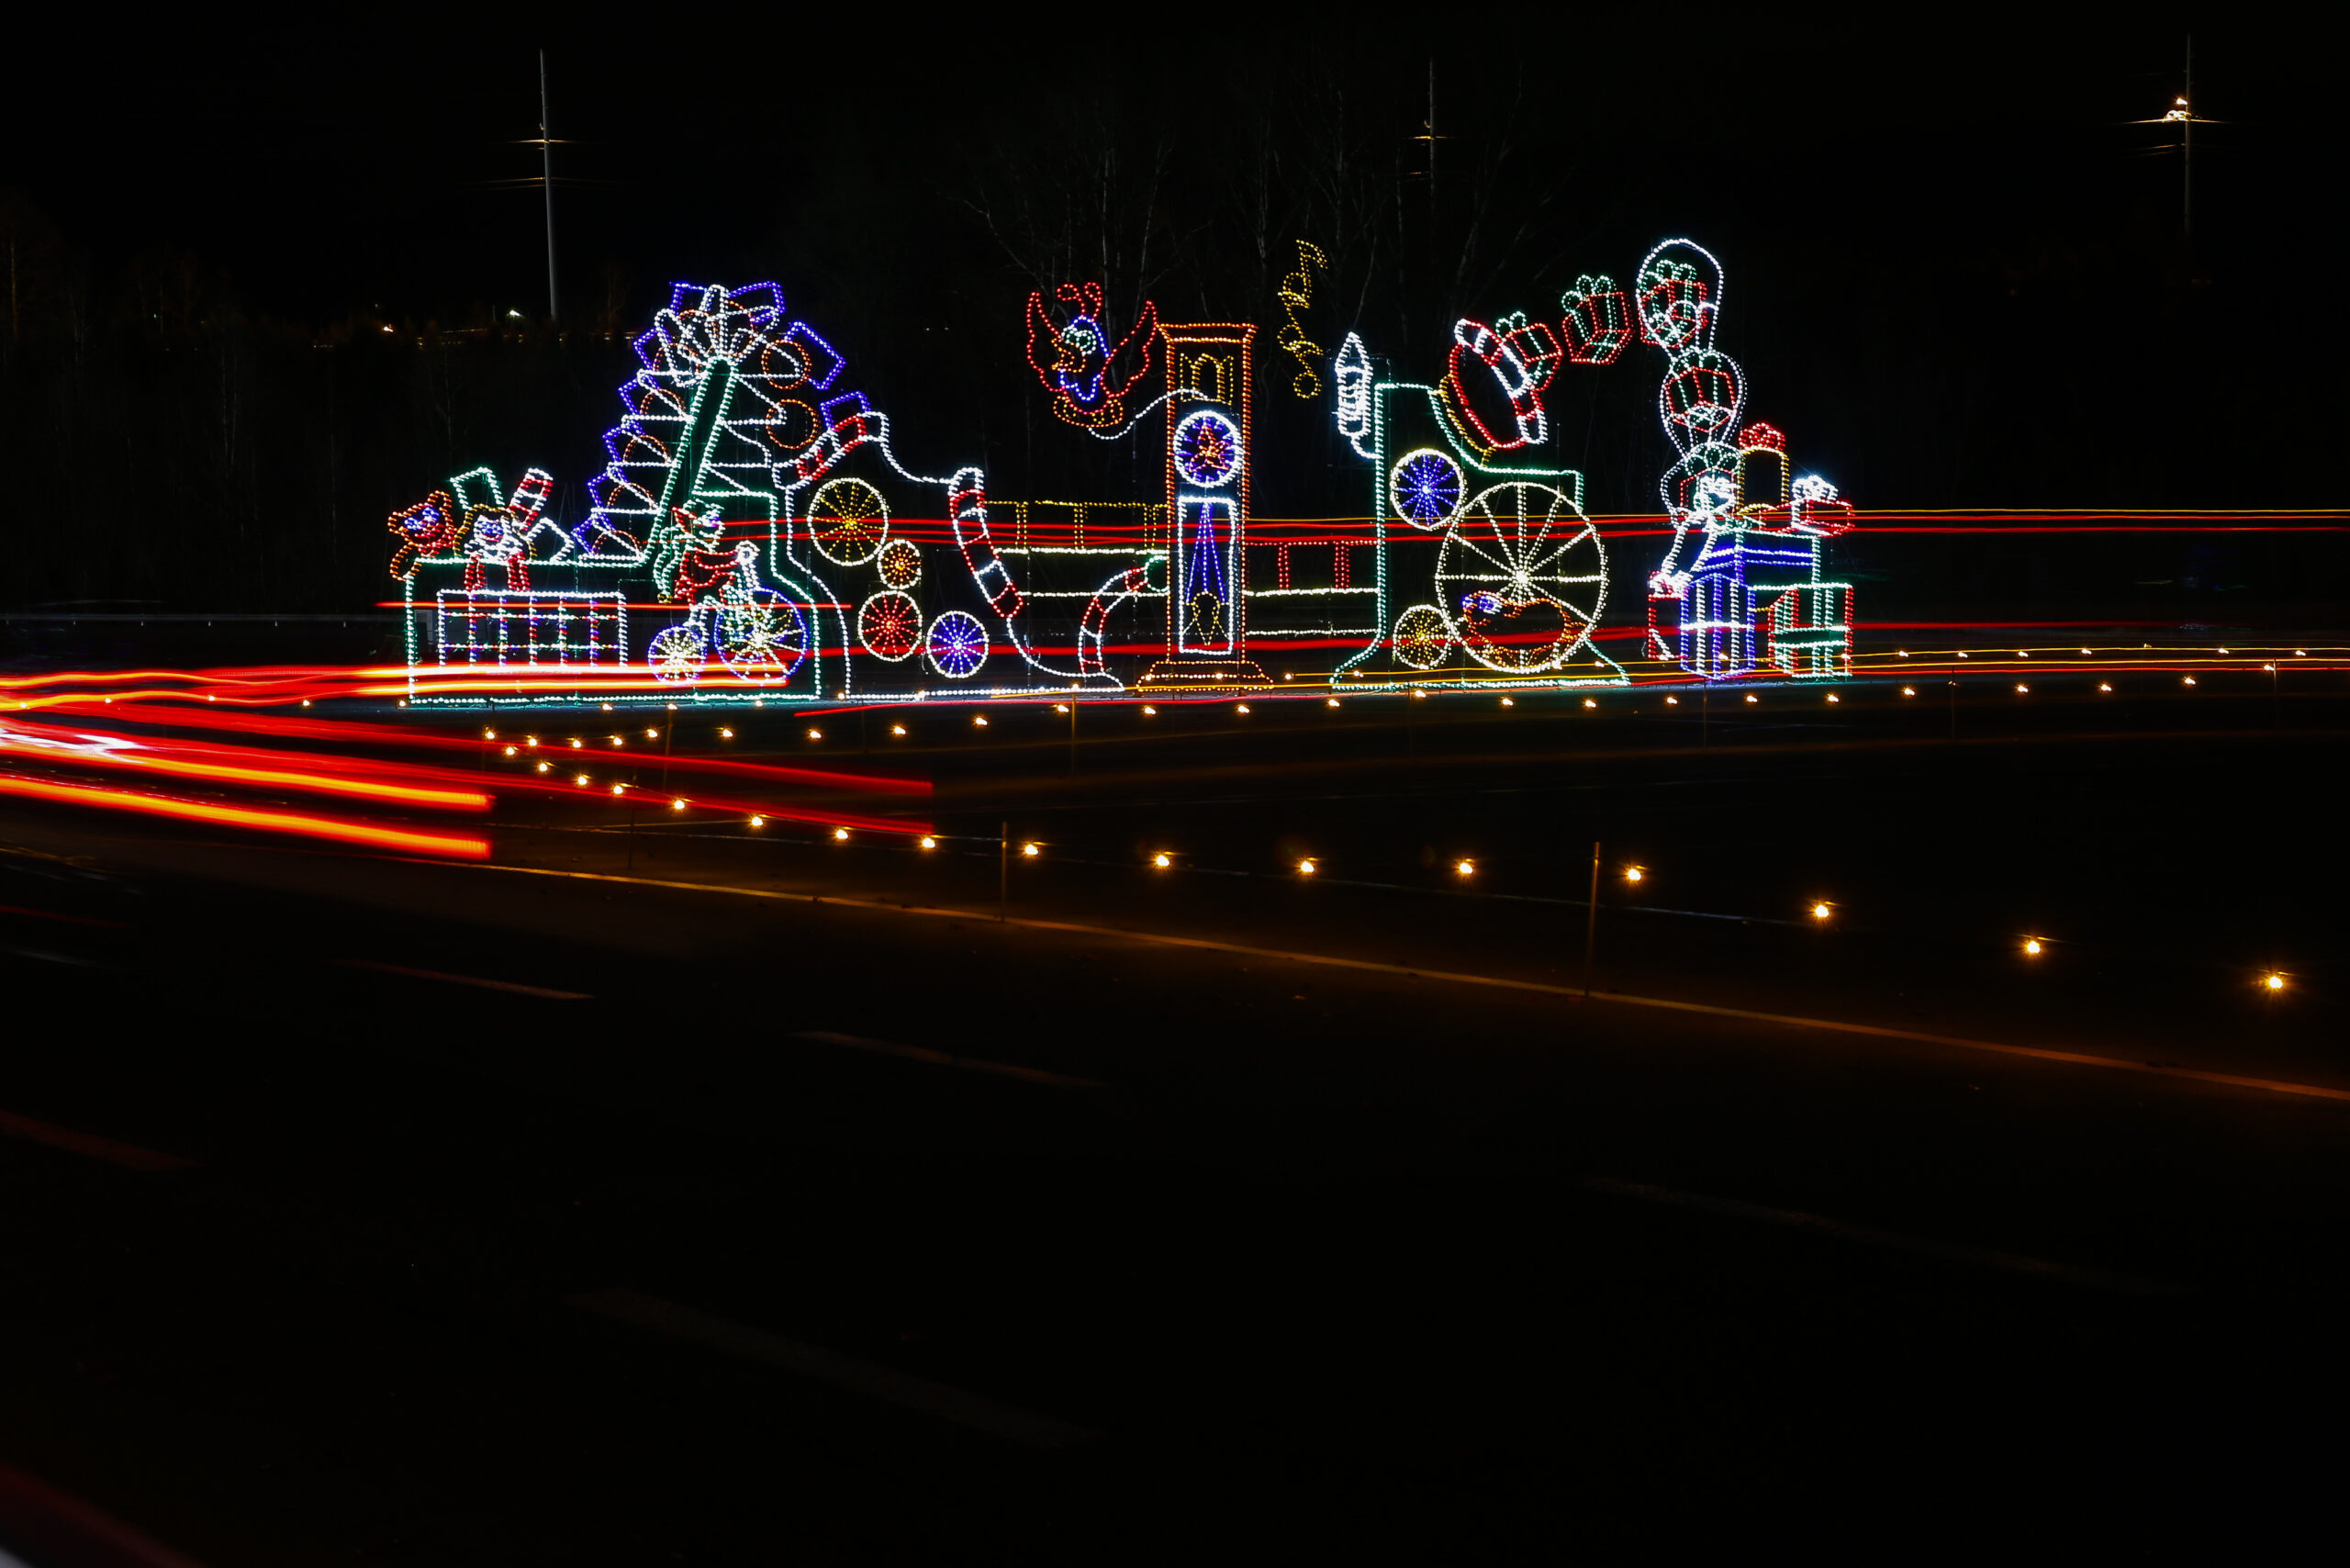 Speedway In Lights Bristol Motor Speedway, Bristol, TN USA Tuesday 12 December 2017  World Copyright: Barry Cantrell NKP